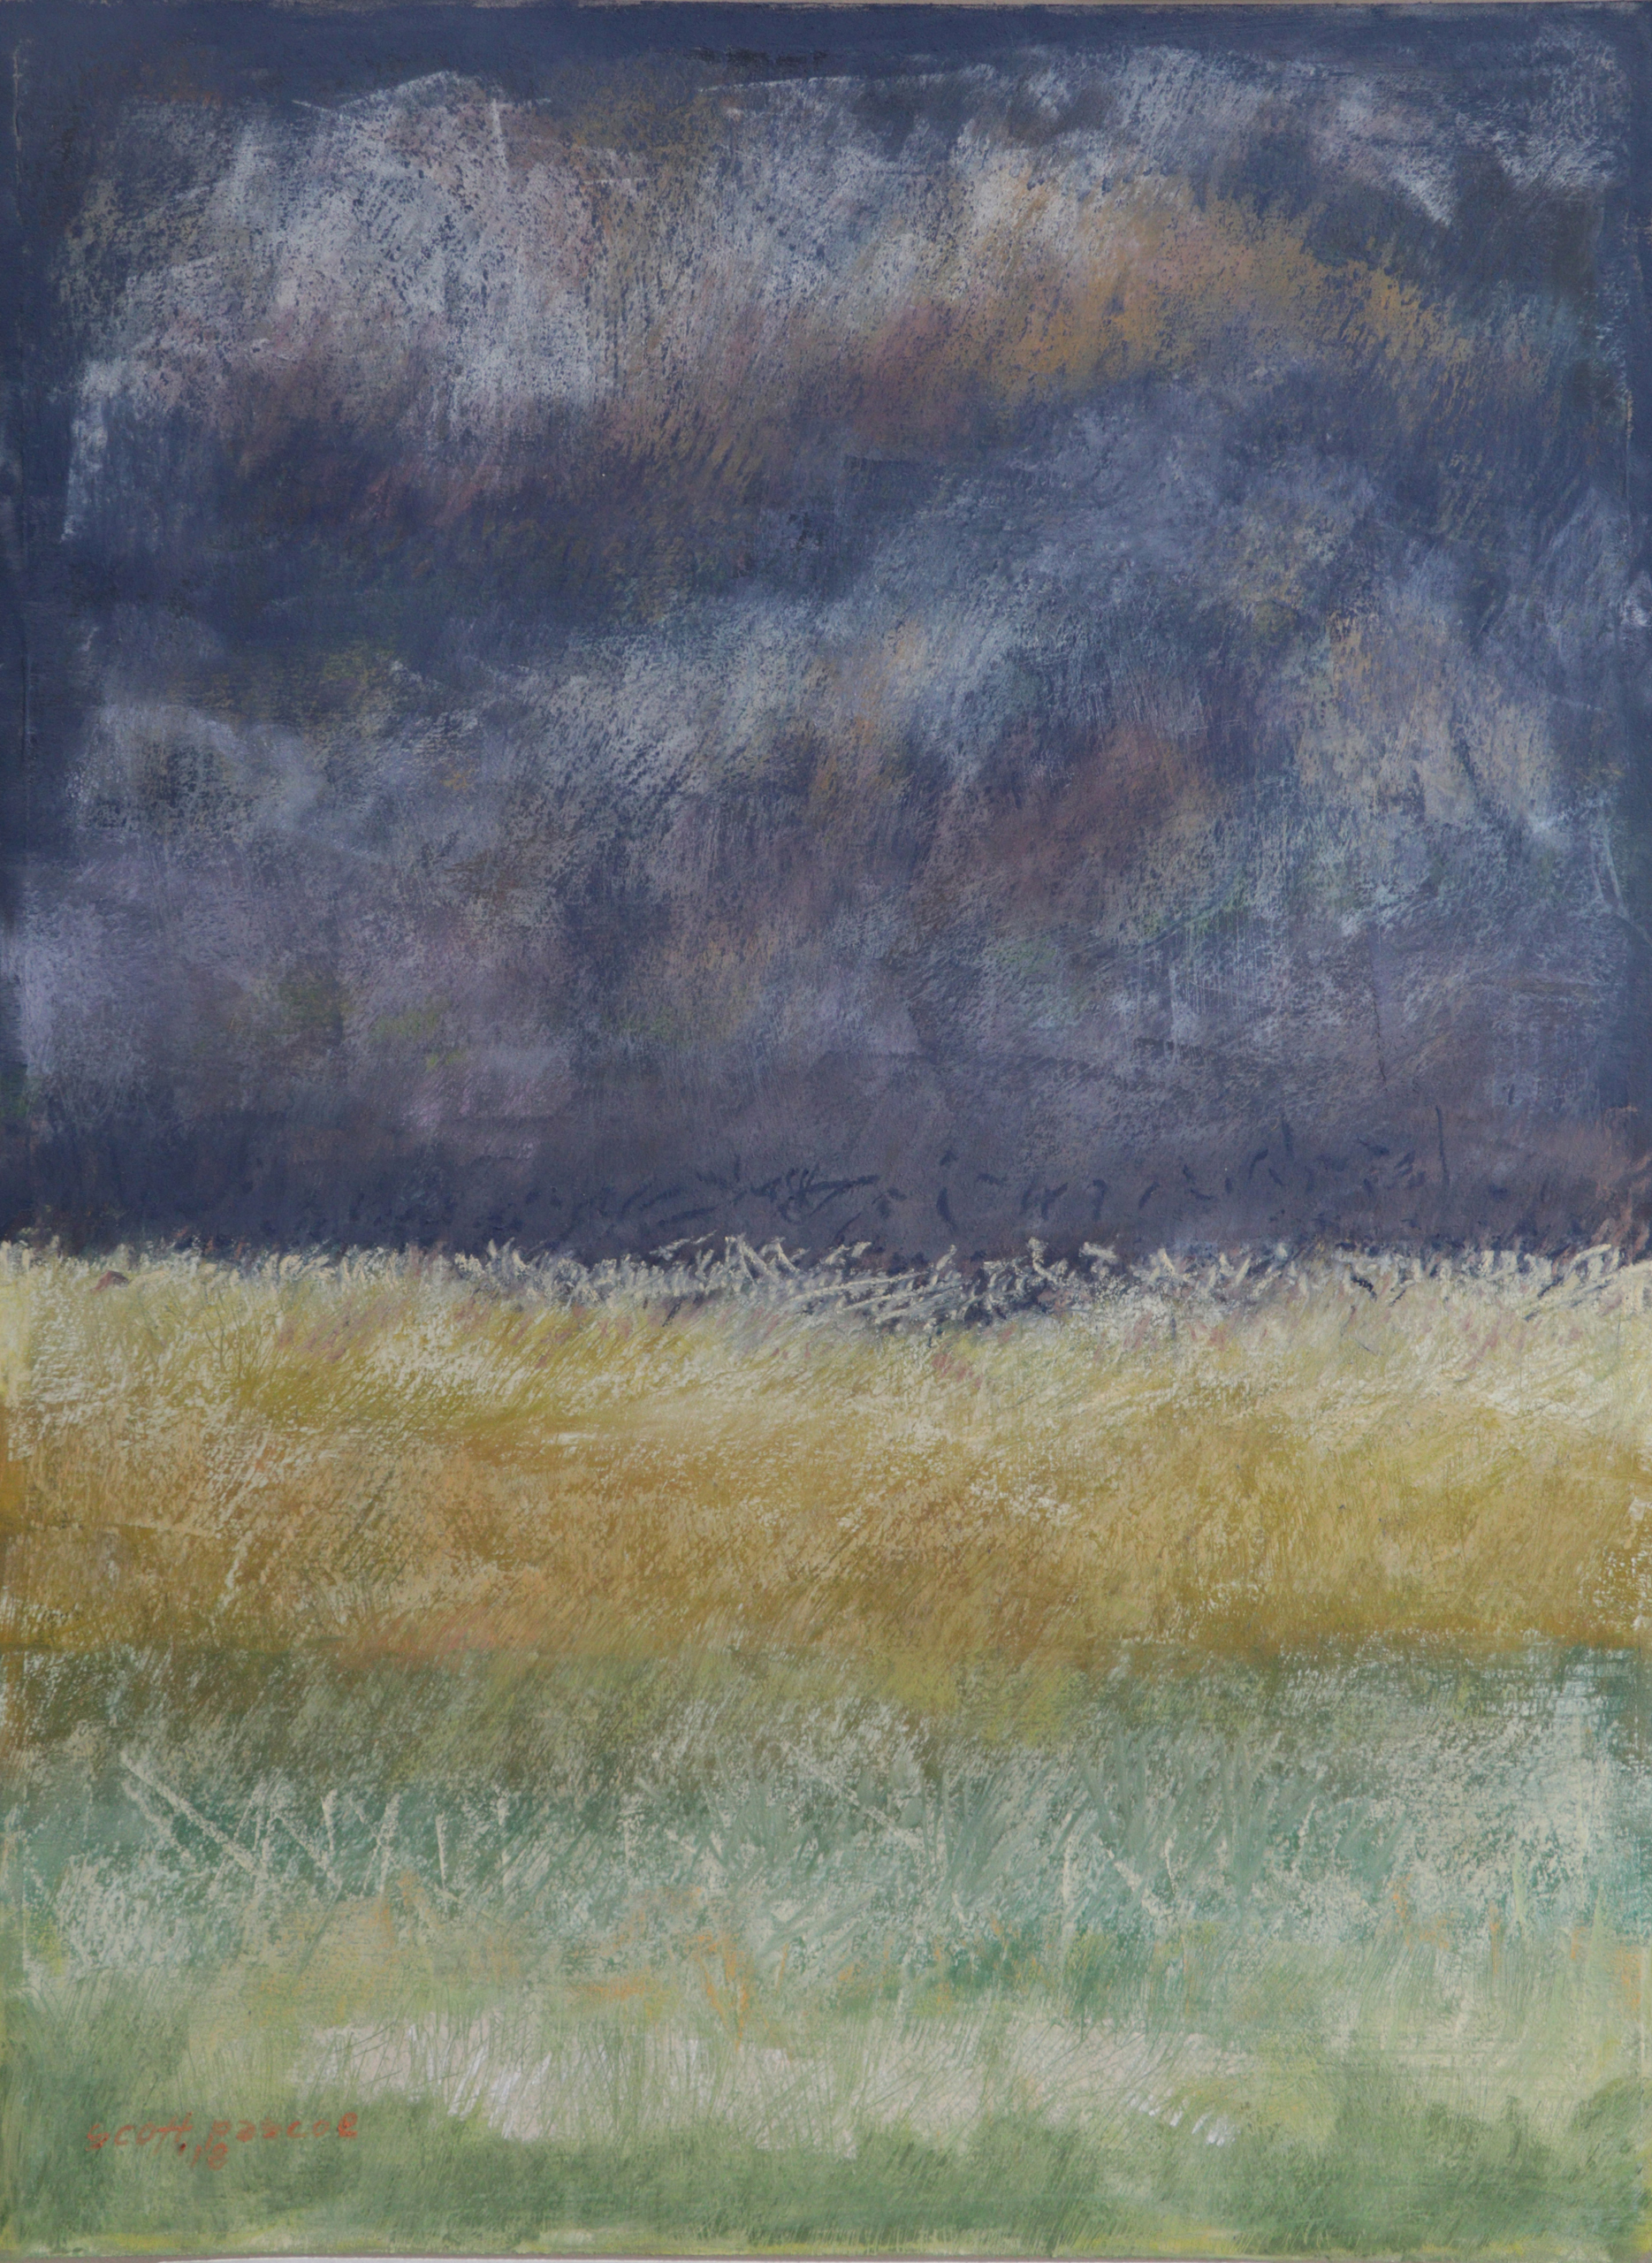 Leaves of Grass 16x12 Soft Pastel